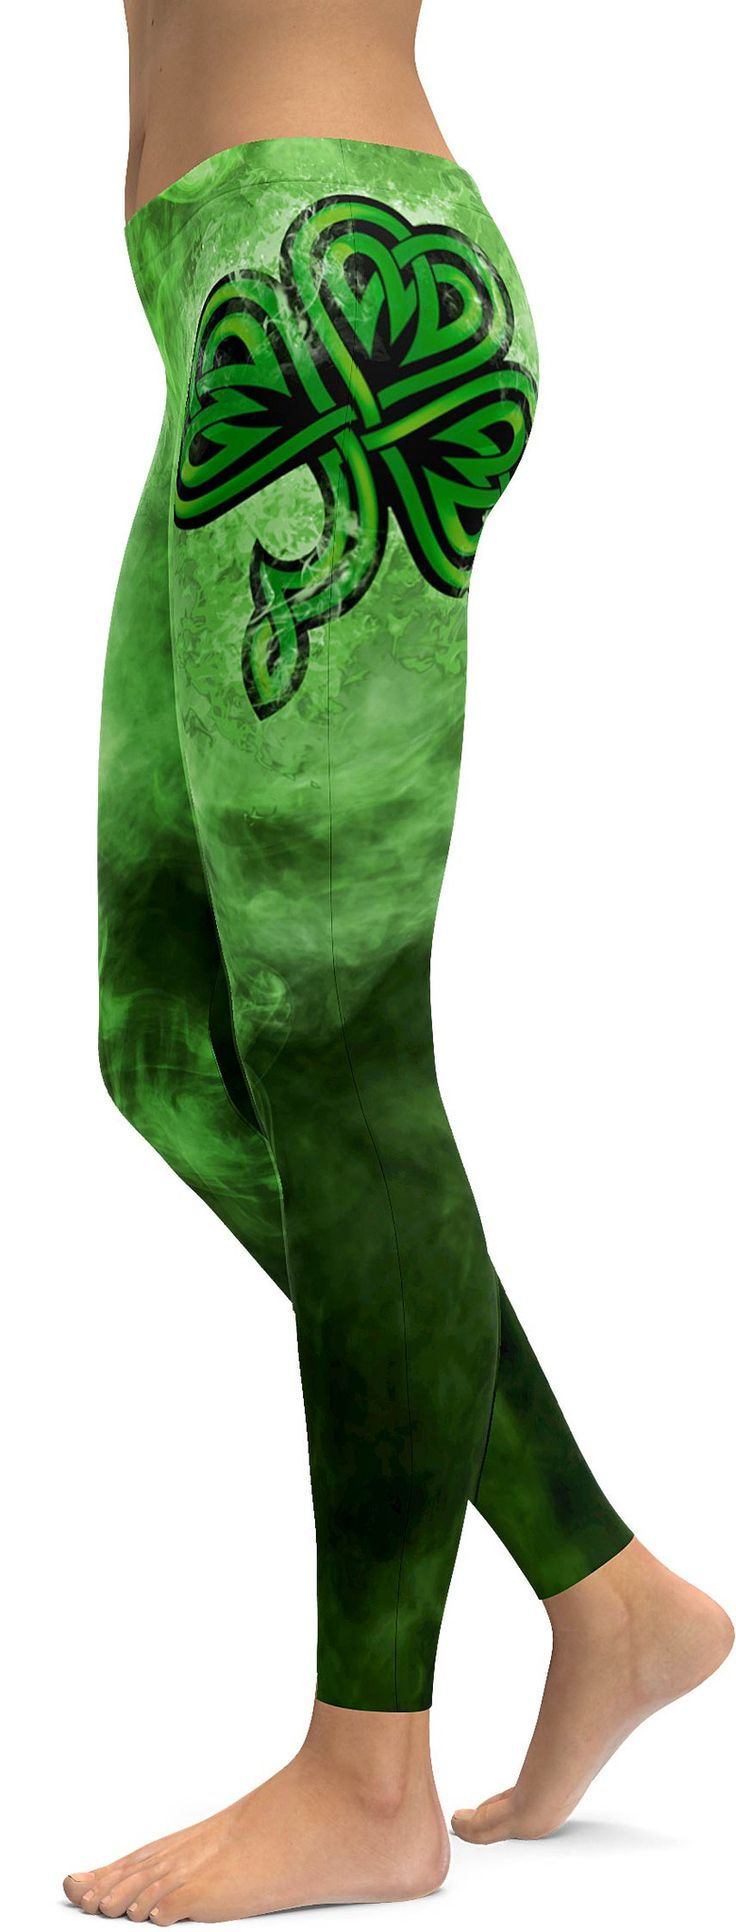 There is no better way to show your St. Patrick's Day spirit than with these awesome Irish Smoking Shamrock Leggings. The shamrock is the most instantly recognizable emblem of Ireland's heritage and c